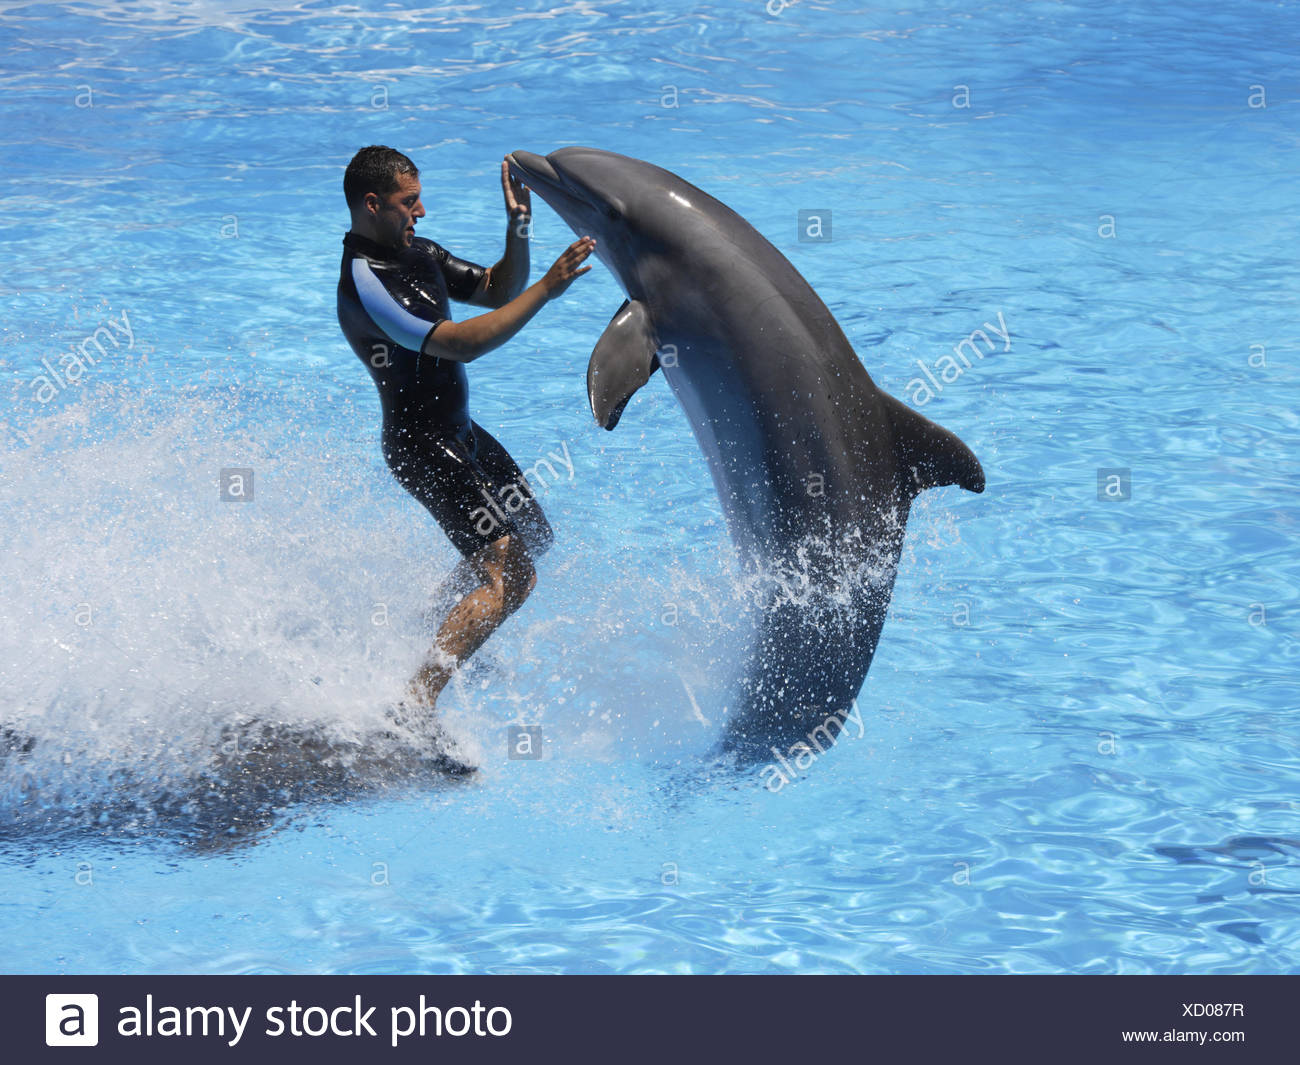 Bottlenose dolphins and trainer, Loro Parque, Tenerife, Canary Islands, Spain - Stock Image